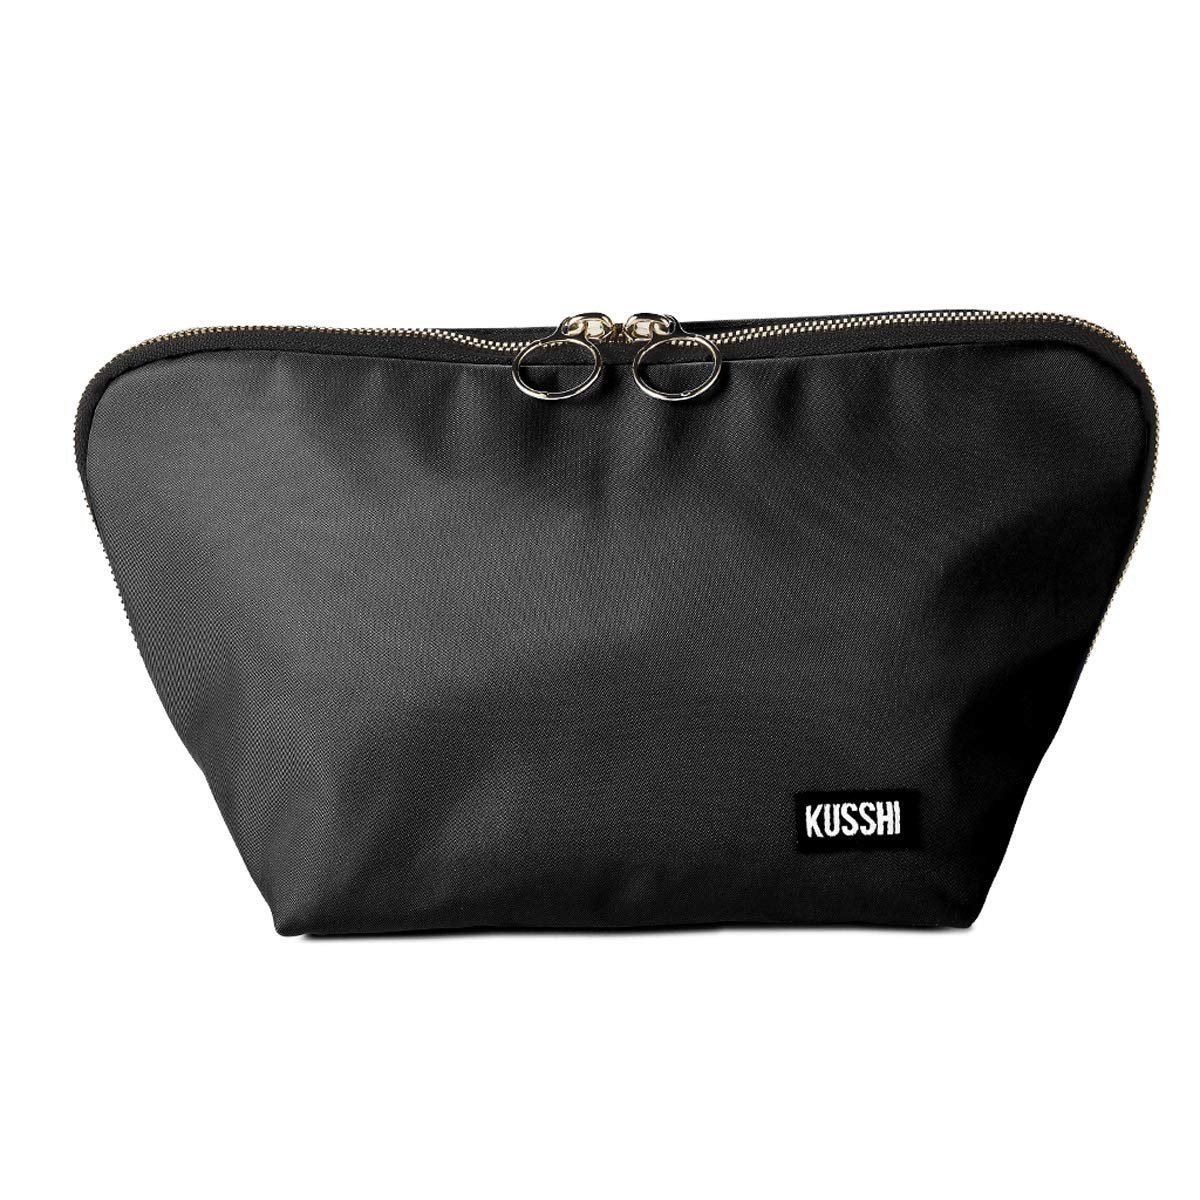 KUSSHI Washable Travel Makeup Cosmetic Bag